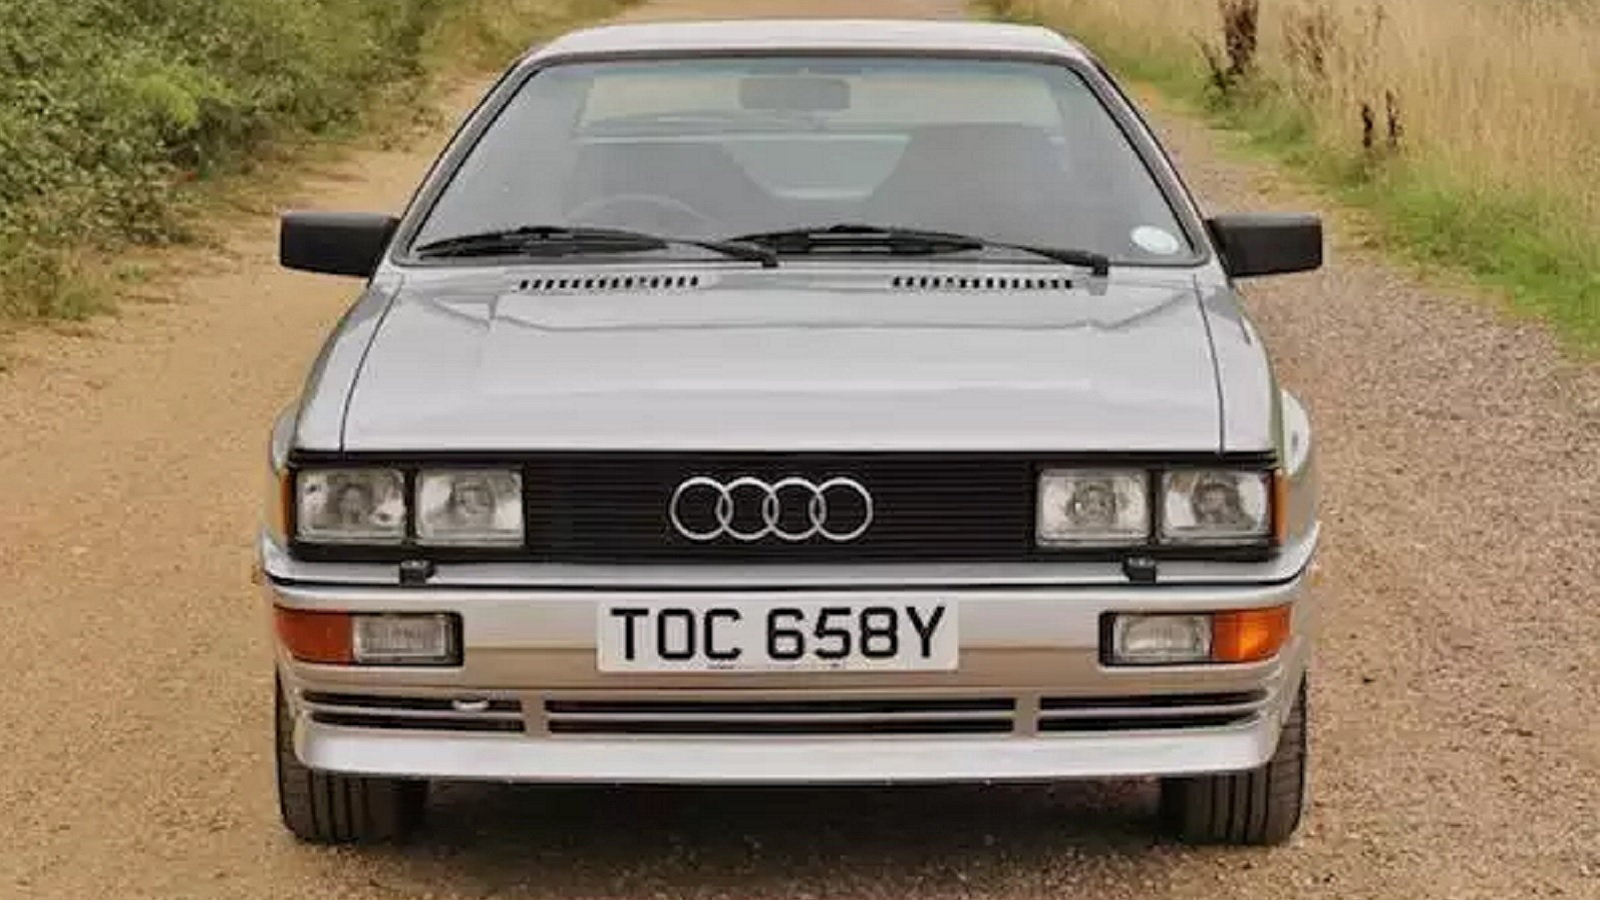 History behind the RHD Quattro heading to auction